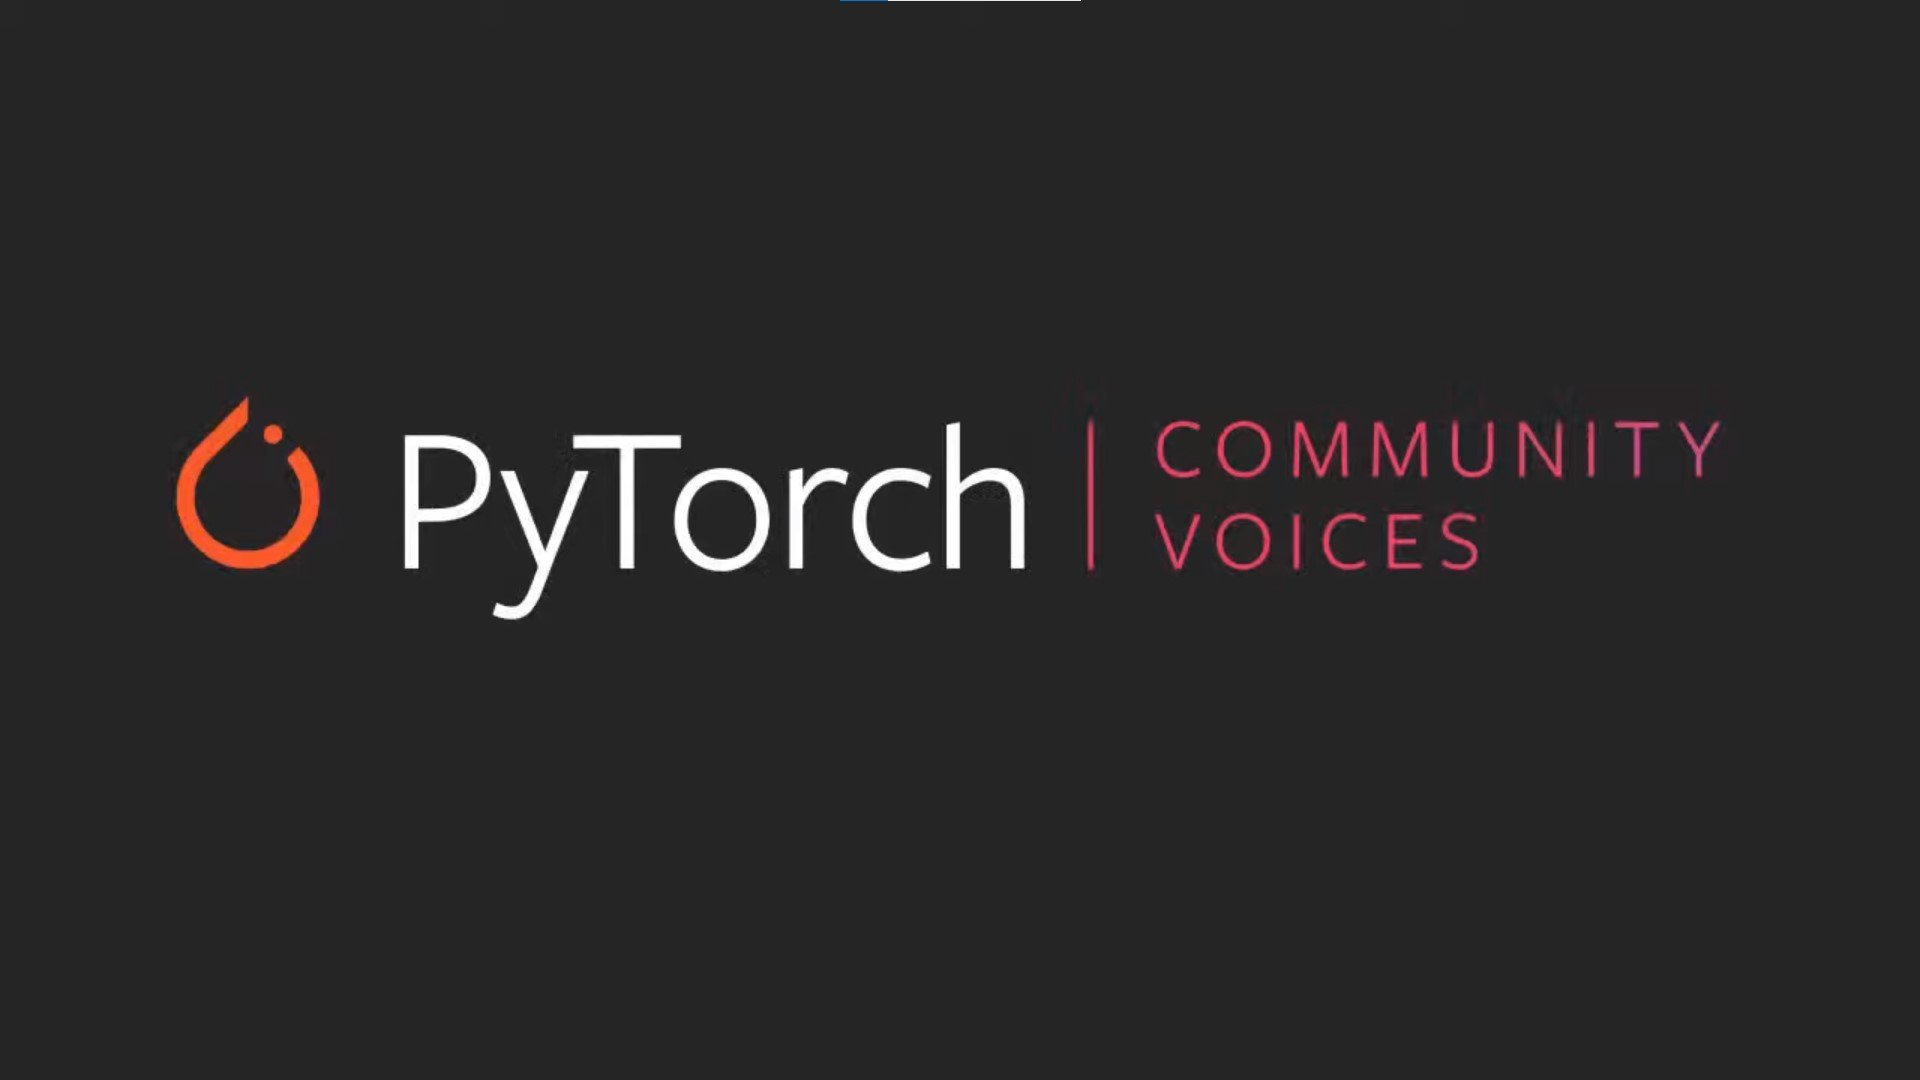 PyTorch community voices